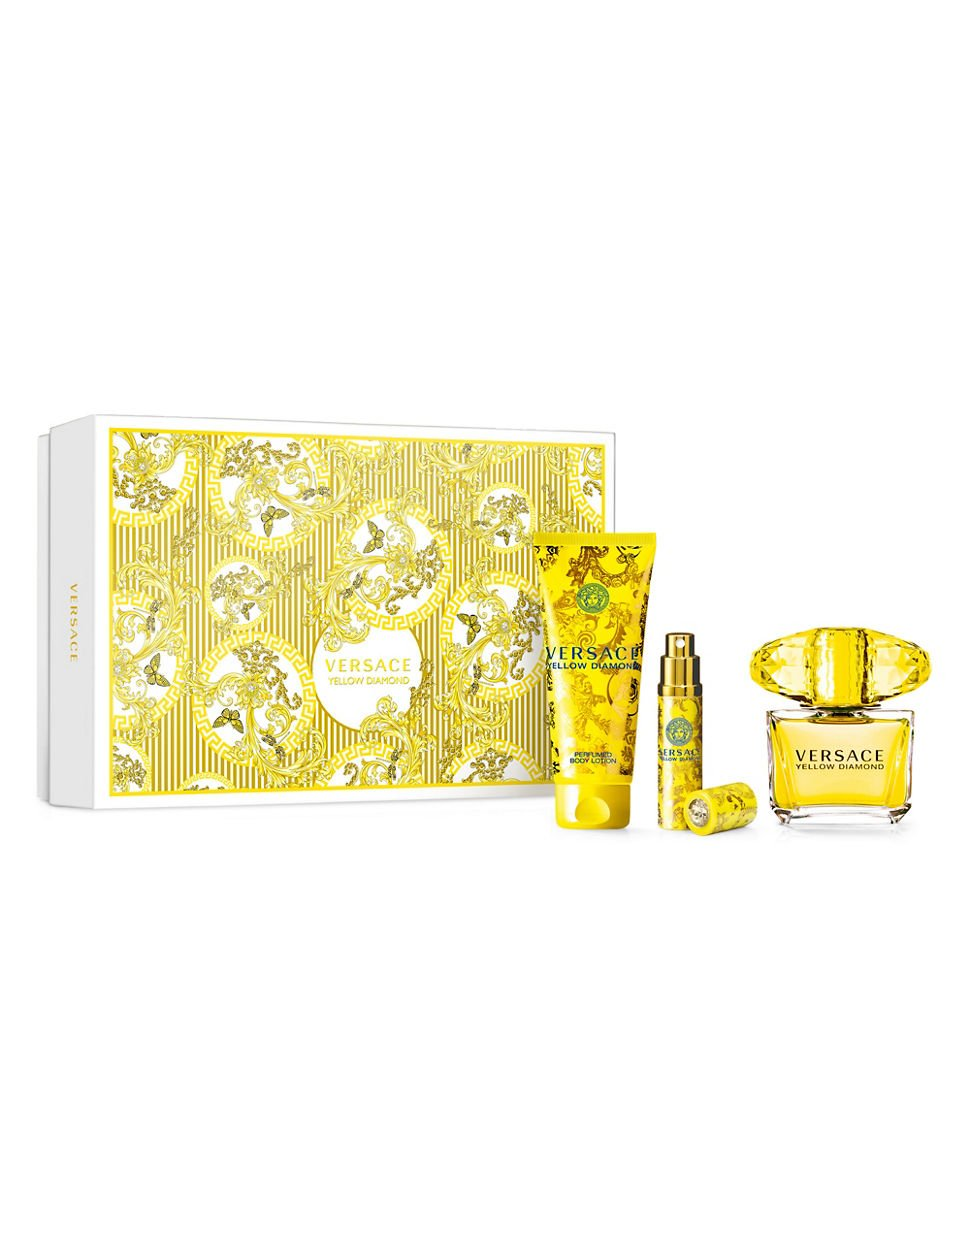 Amazon.com : Versace Yellow Diamond EDT Splash, 0.17 Ounce ...